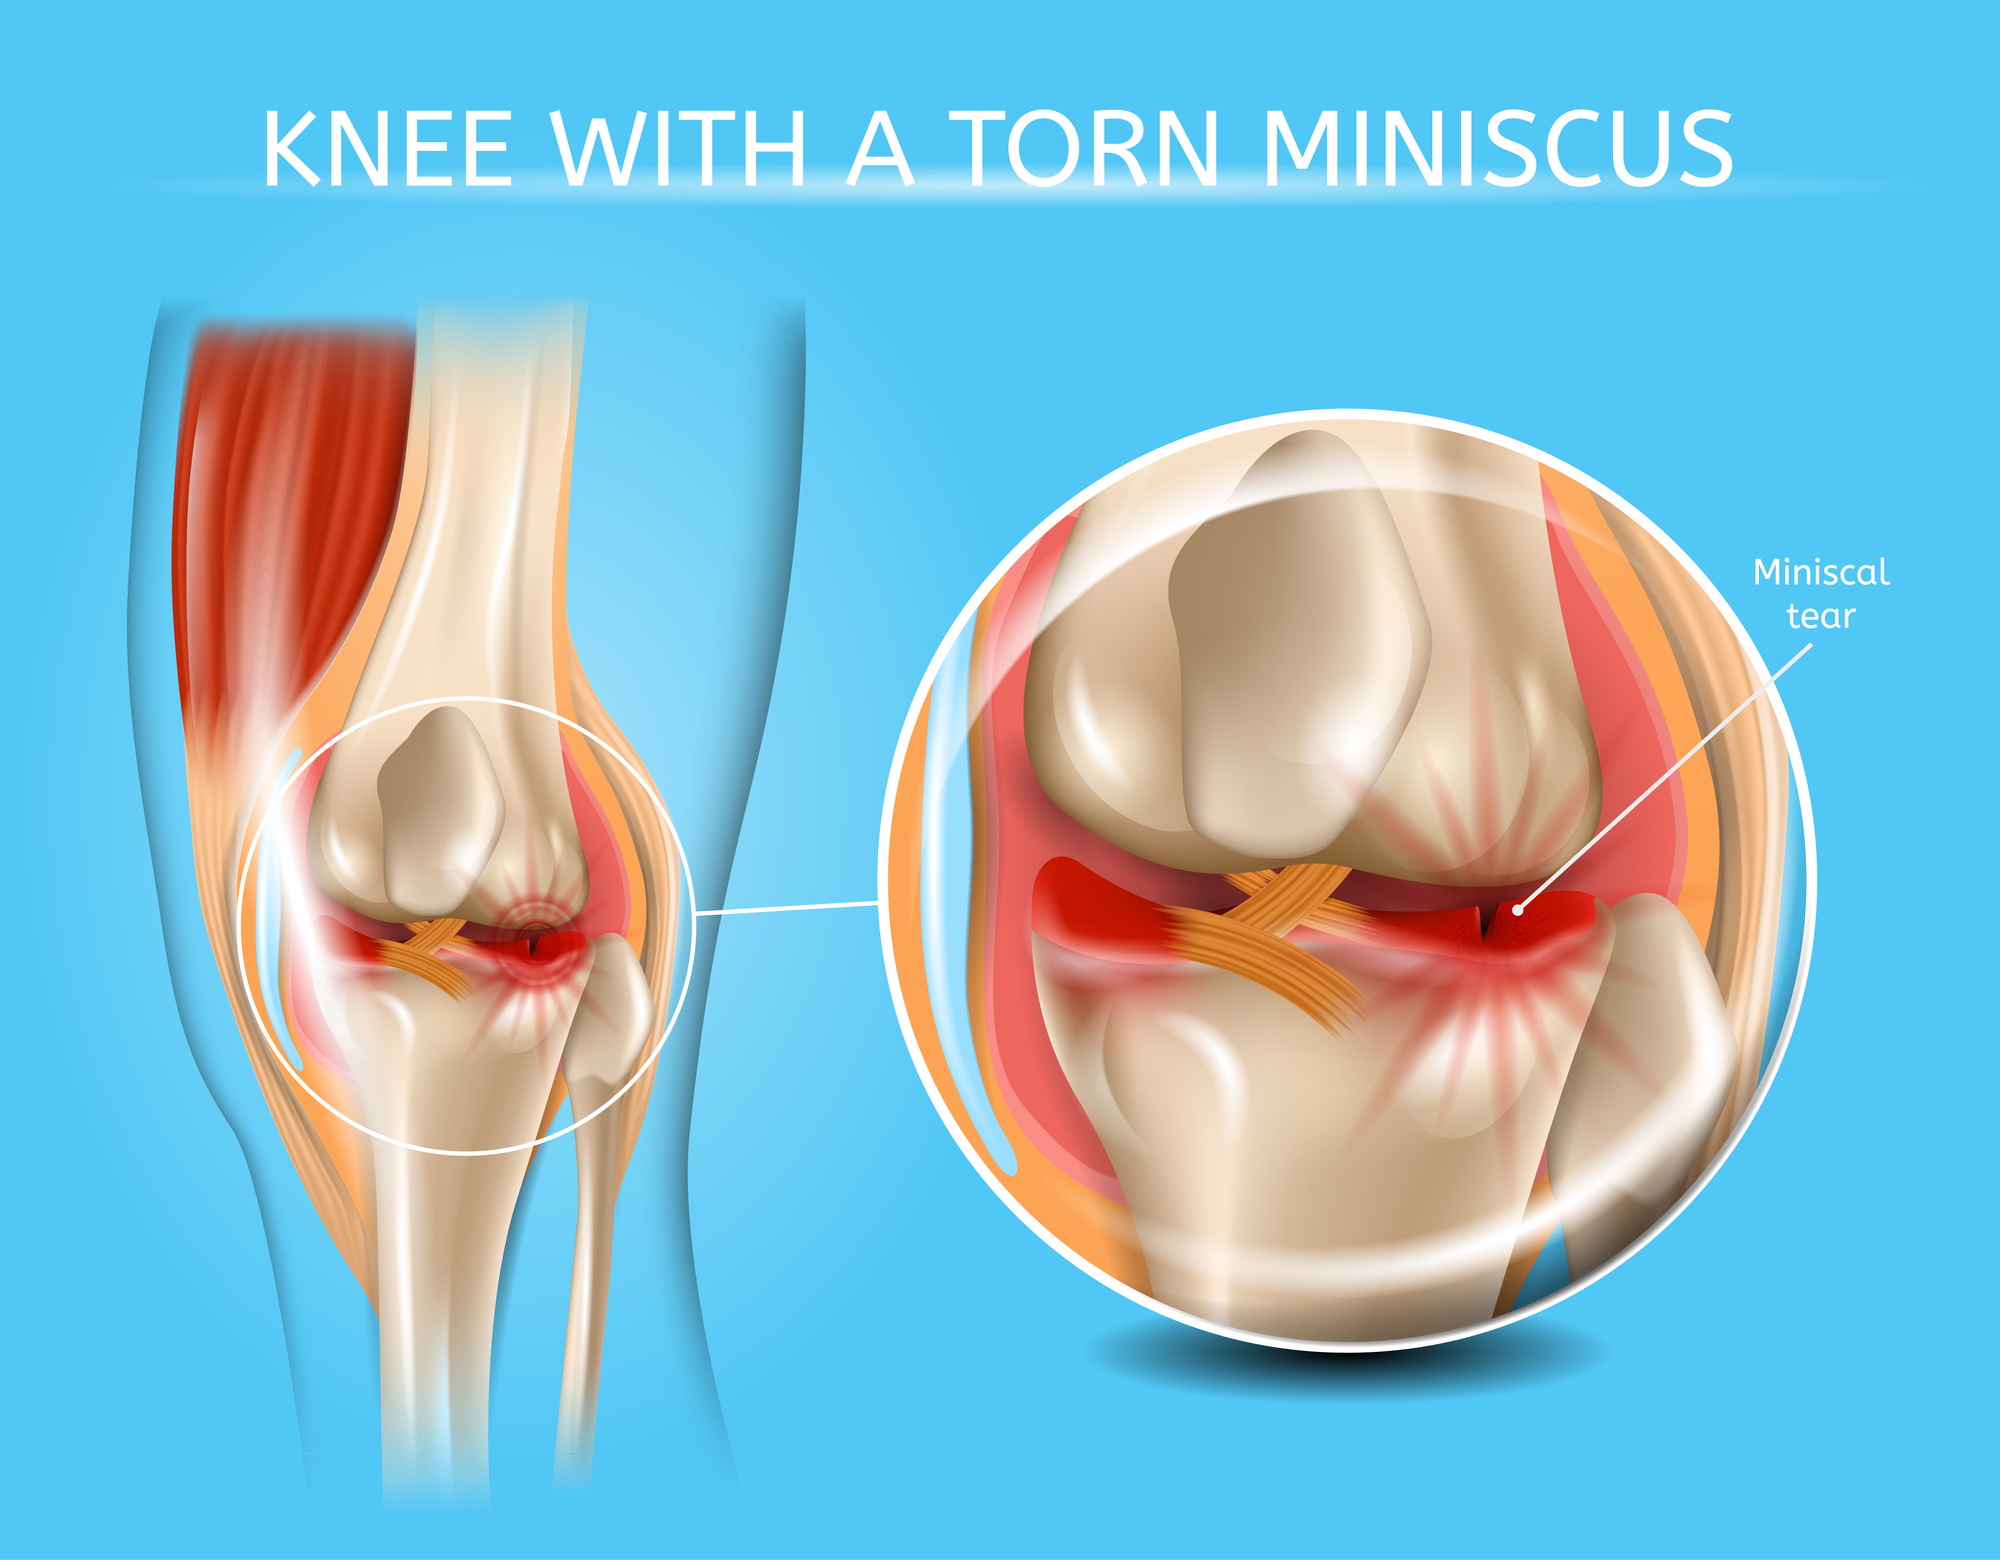 Illustration of knee with torn meniscus.